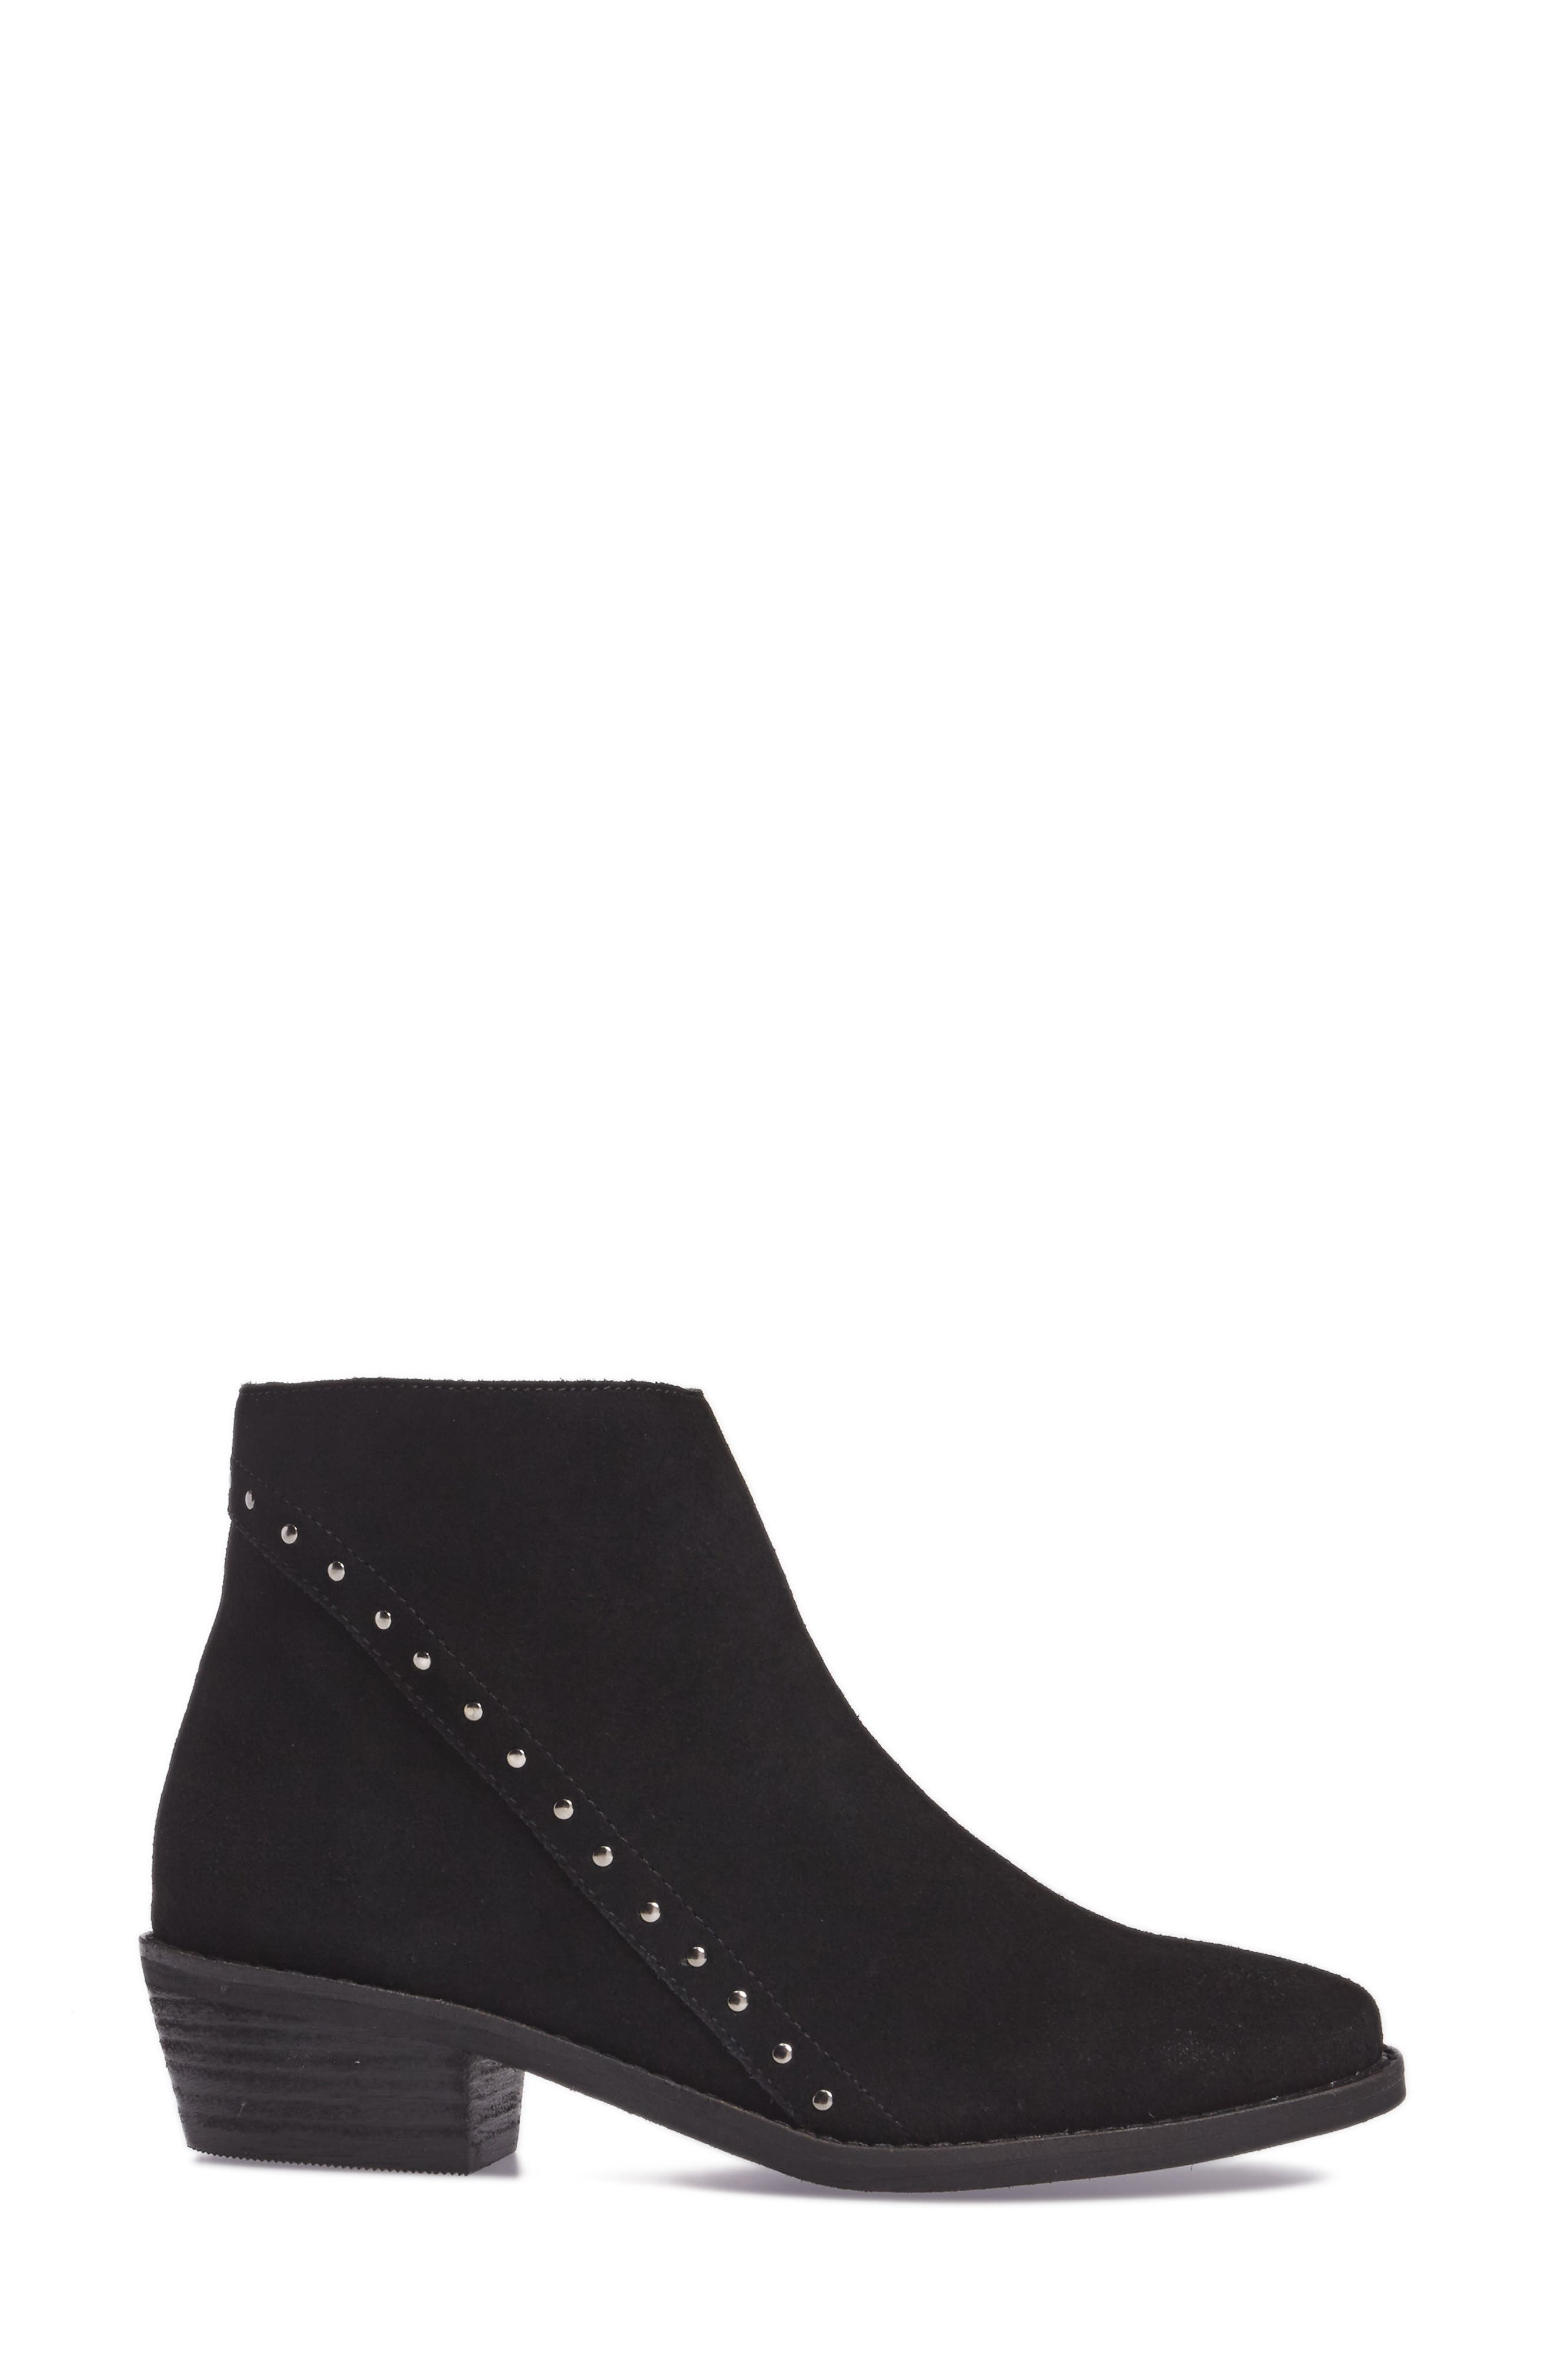 Irven Stud Bootie,                             Alternate thumbnail 3, color,                             Black Suede